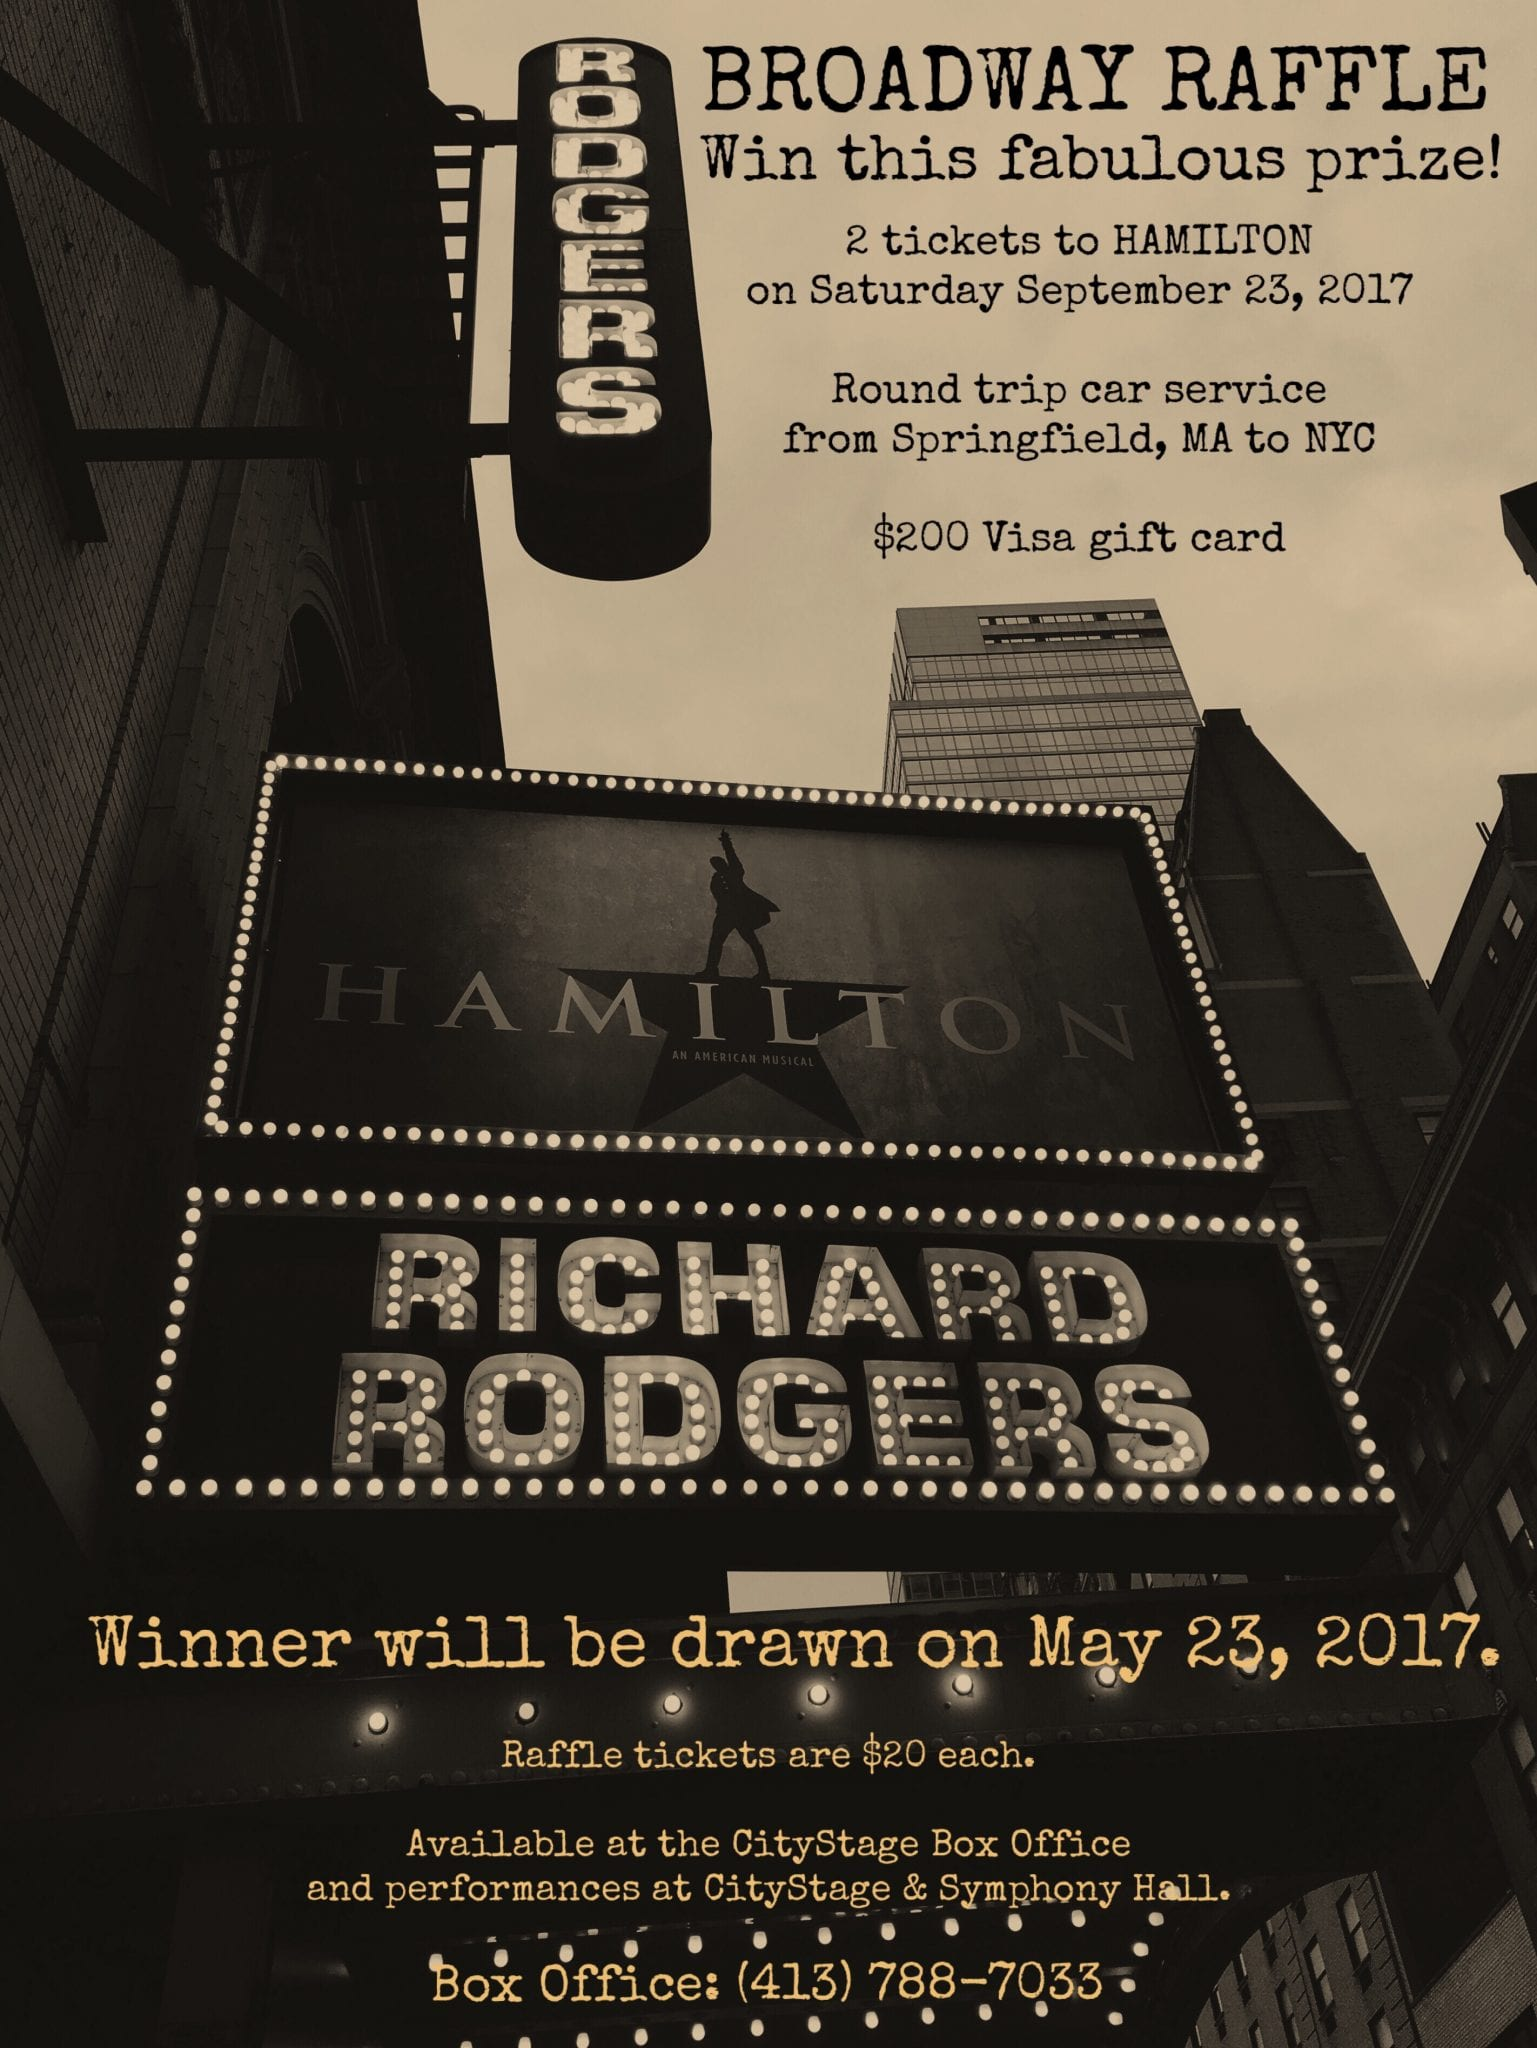 CityStage & Symphony Hall announce a chance to win HAMILTON tickets!